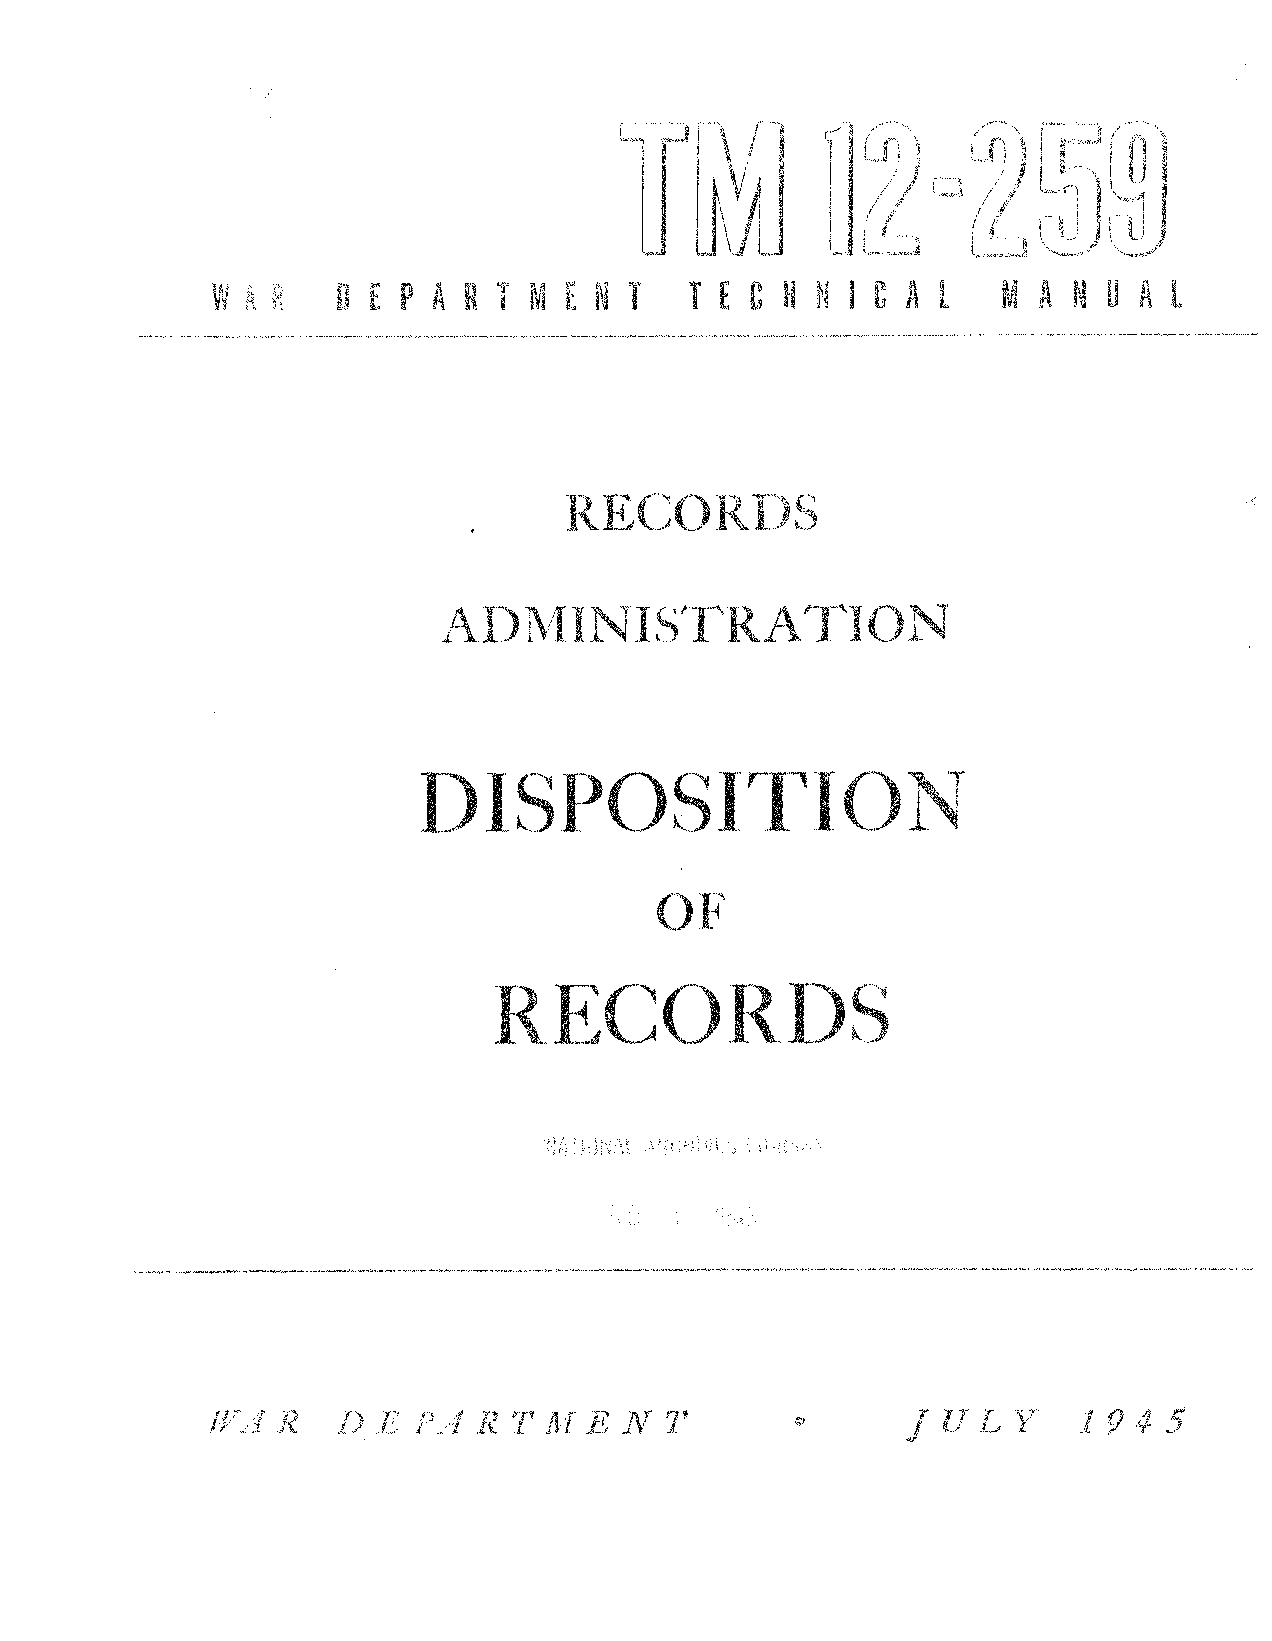 United States. War Department - TM 12-259 Disposition of Records